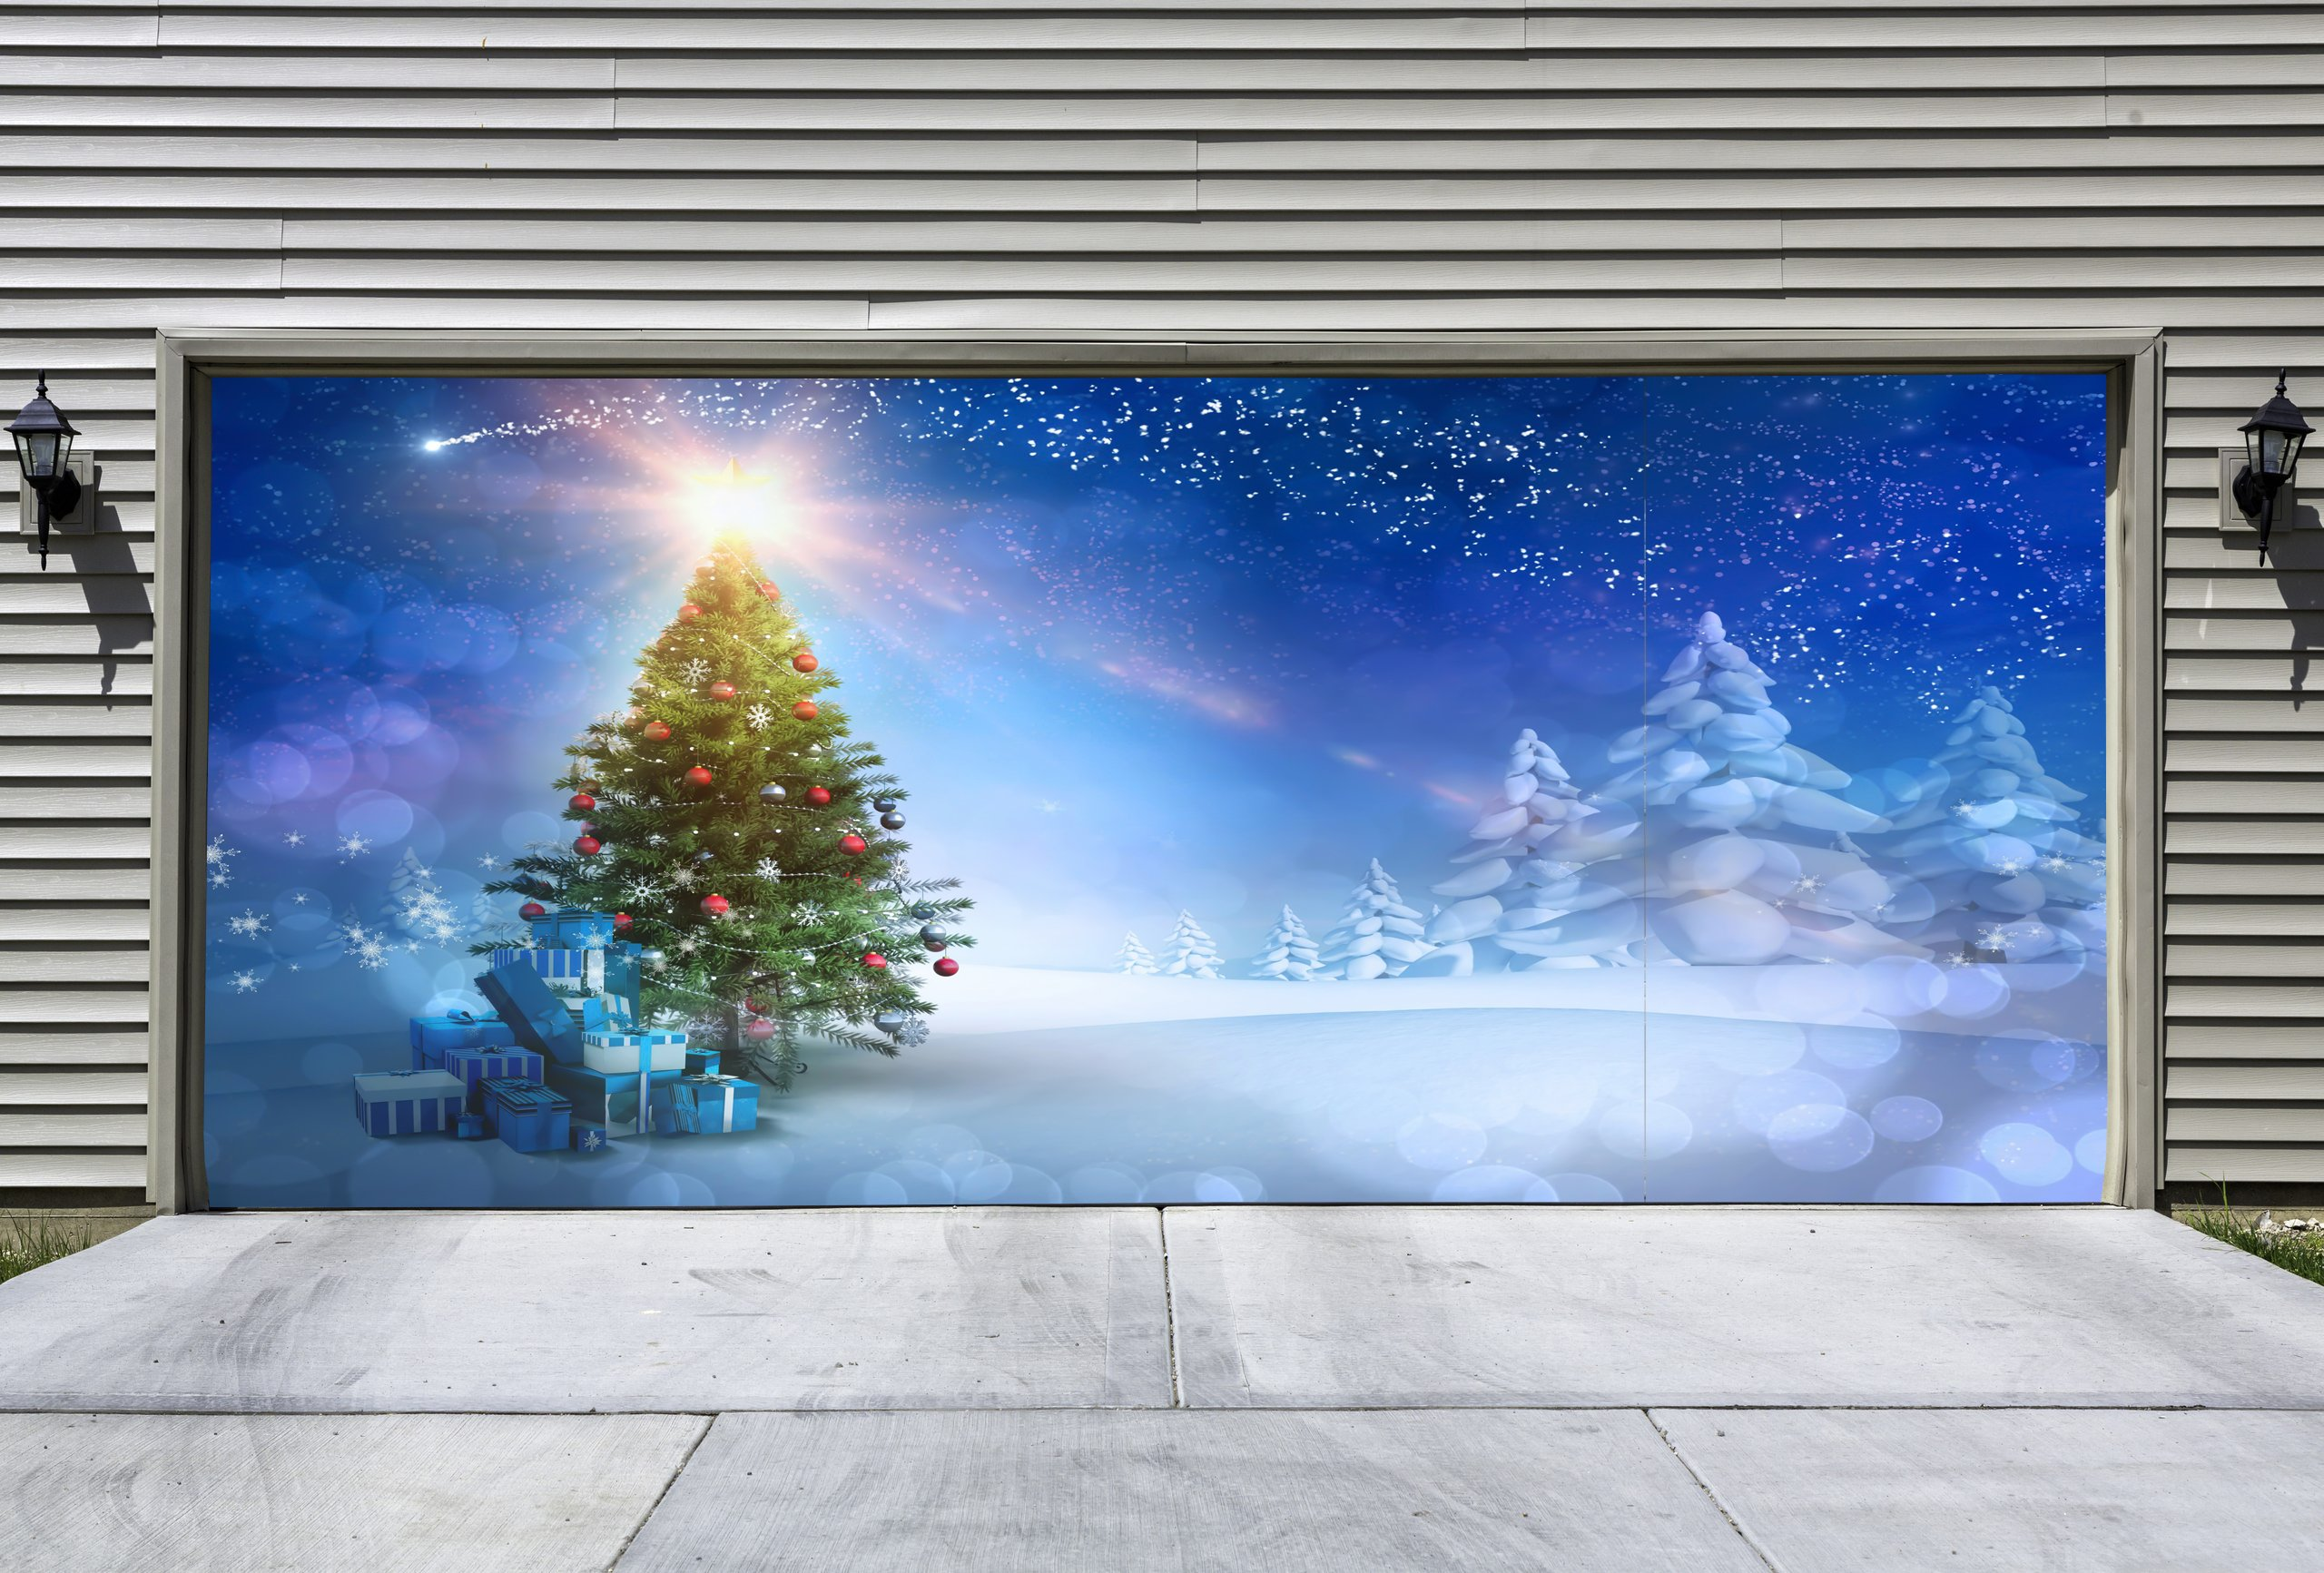 christmas tree decor garage door cover christmas door decorations outdoor holiday double garage decorations mural gd36